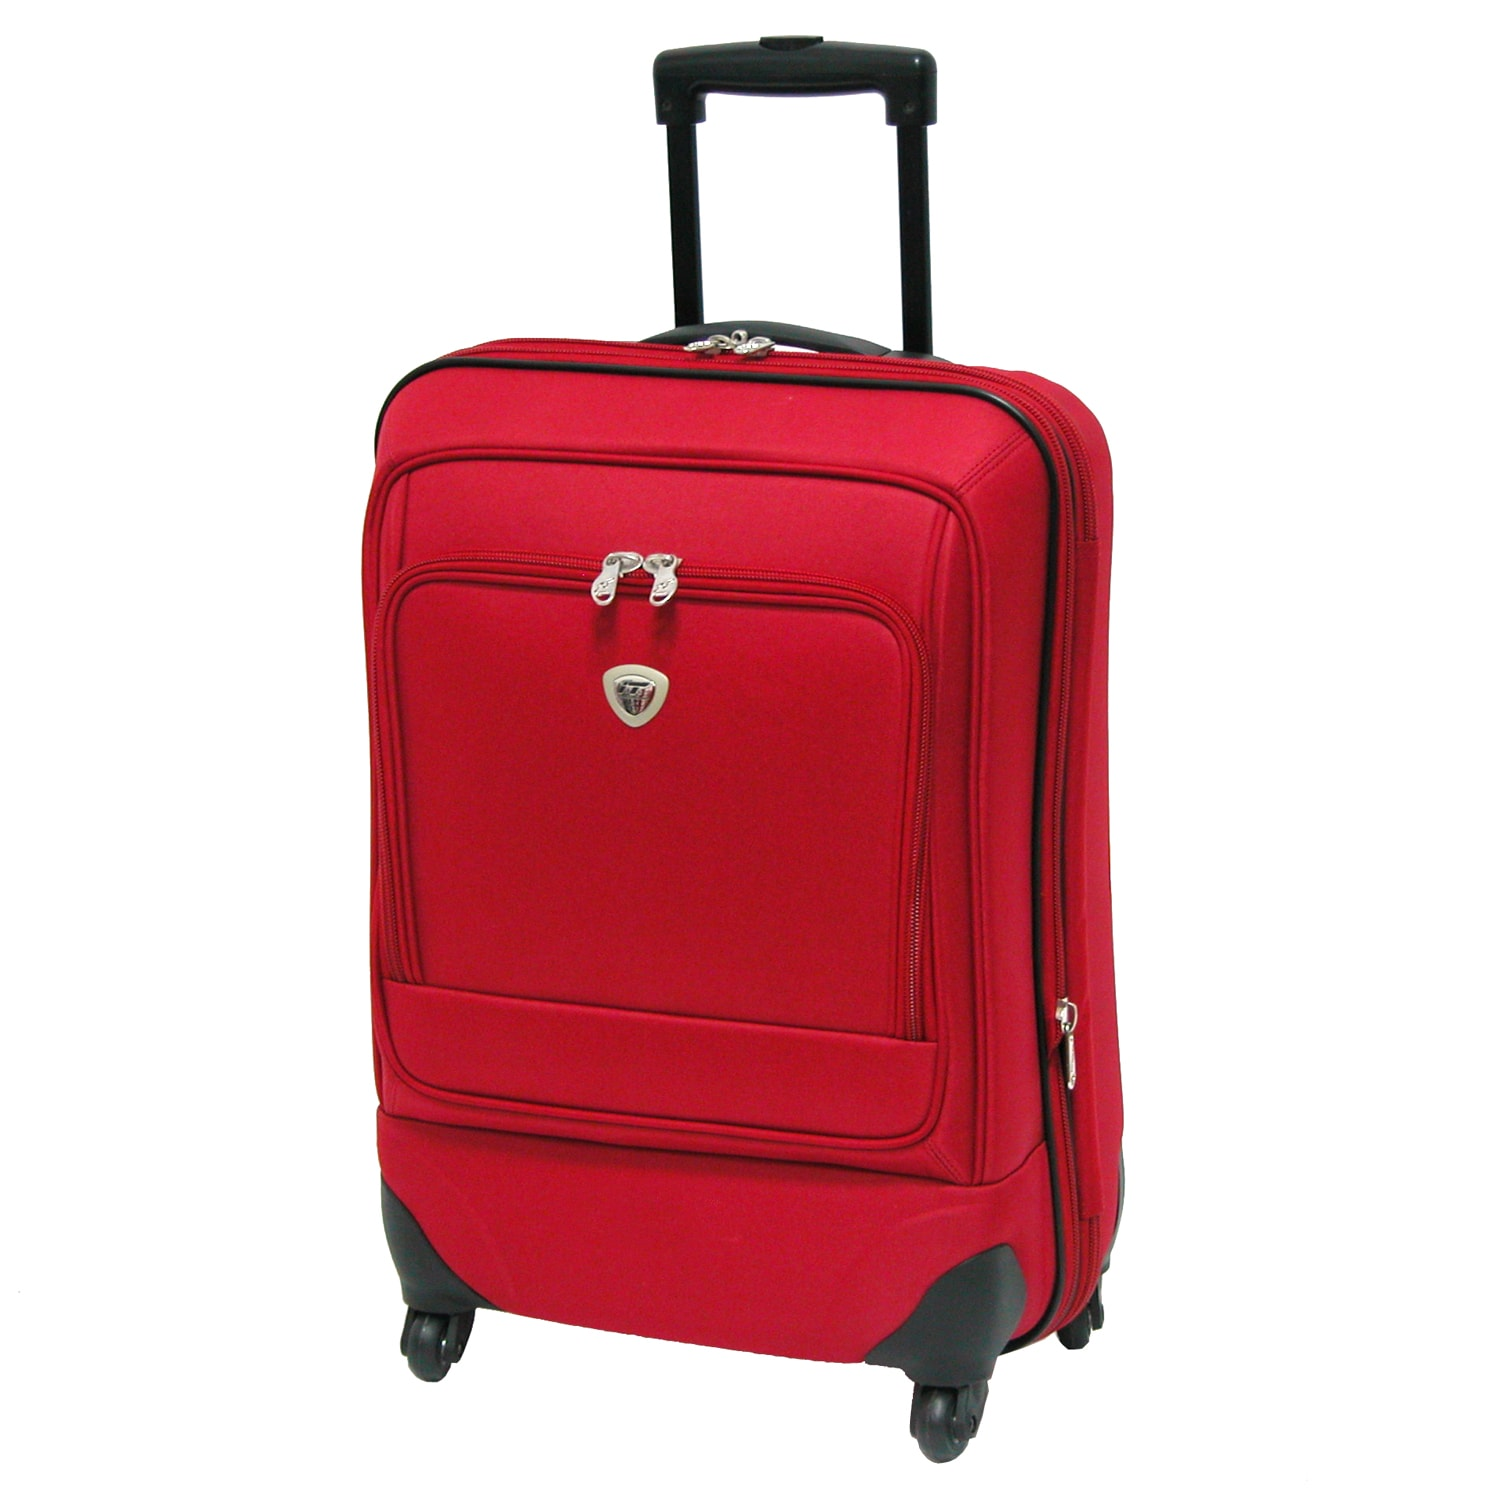 International Traveller Ion 22 Inch Carry On Luggage